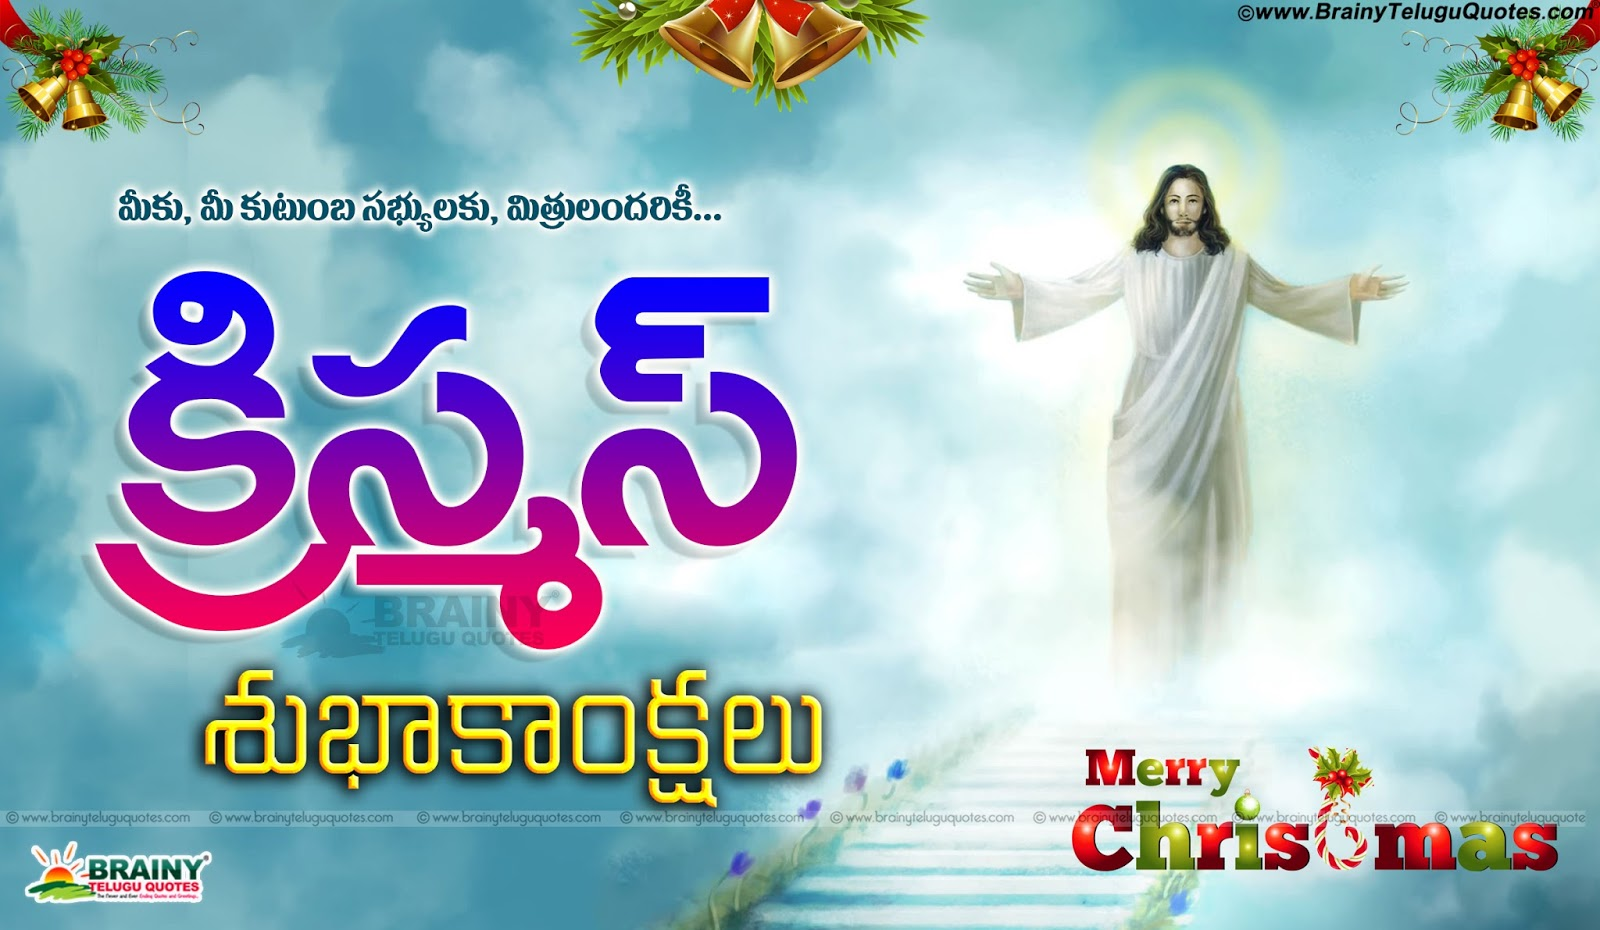 Christmas Online Telugu Greetings Quotes On Lord Jesus Hd Wallpapers With In Bible Versus